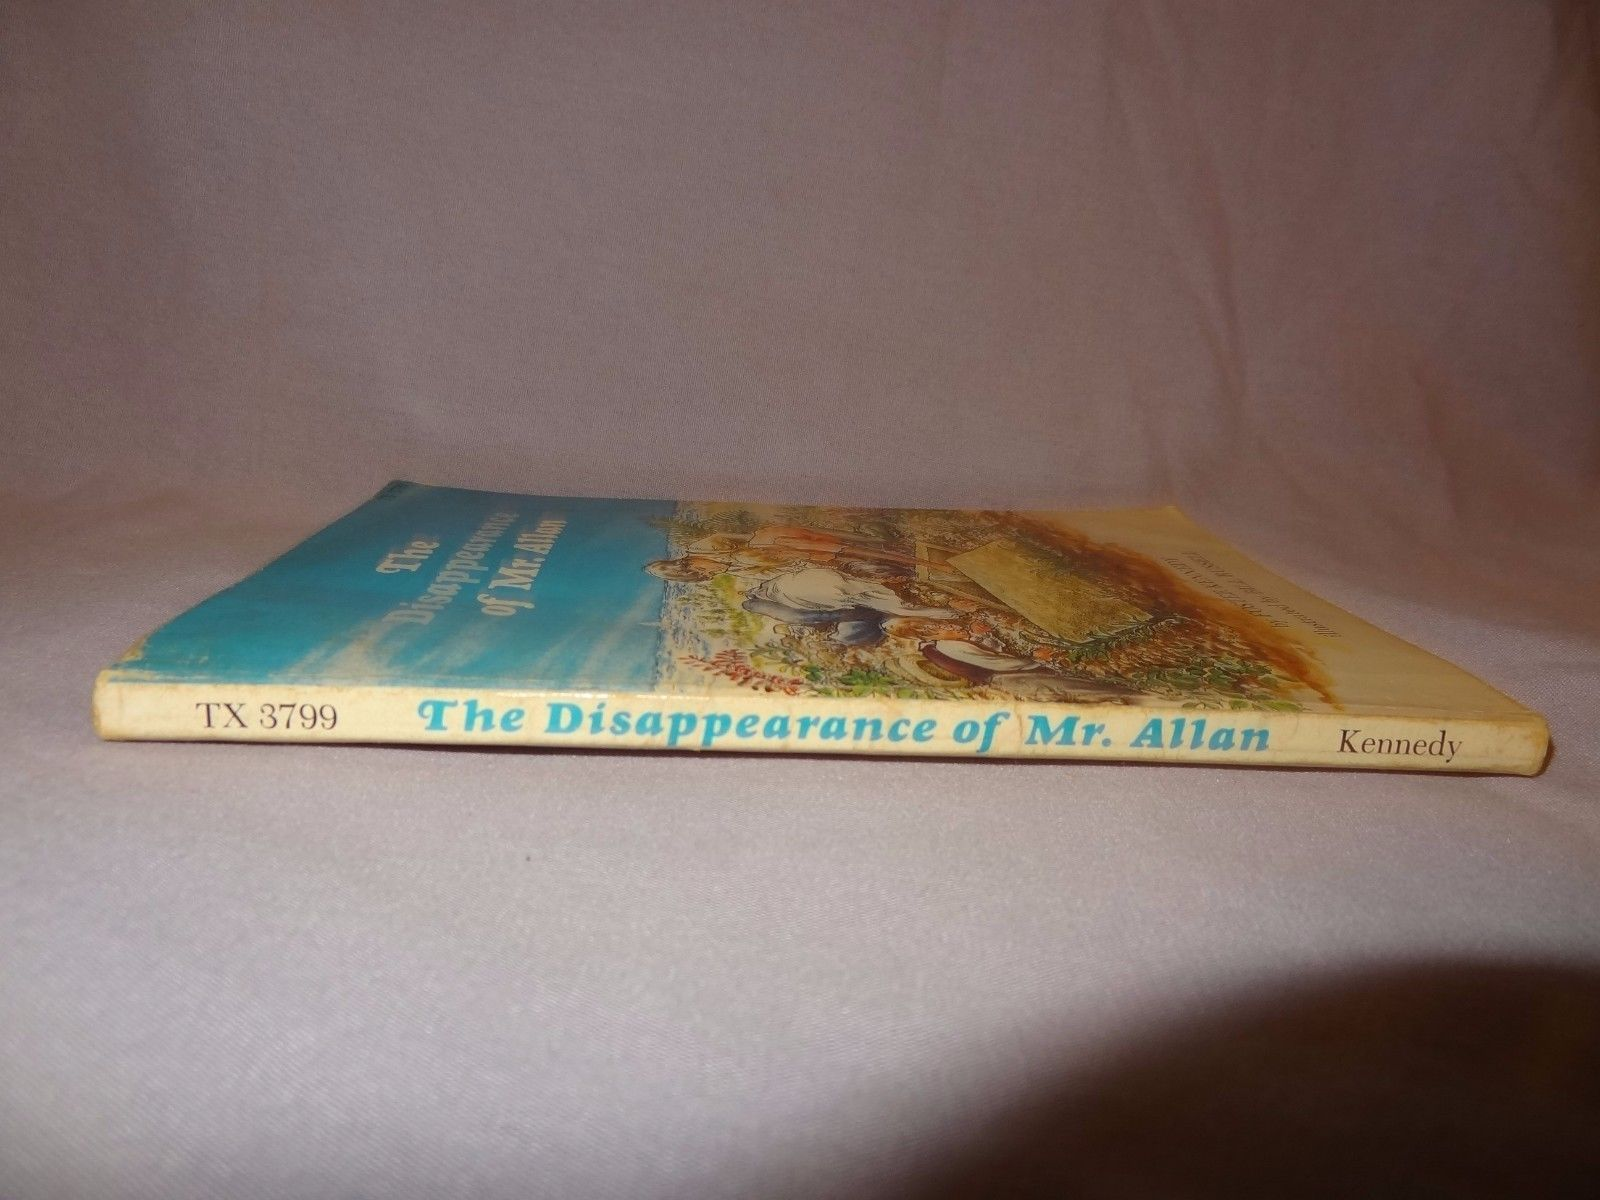 The Disappearance of Mr. Allan 1977 Scholastic Foster Kennedy Story Book